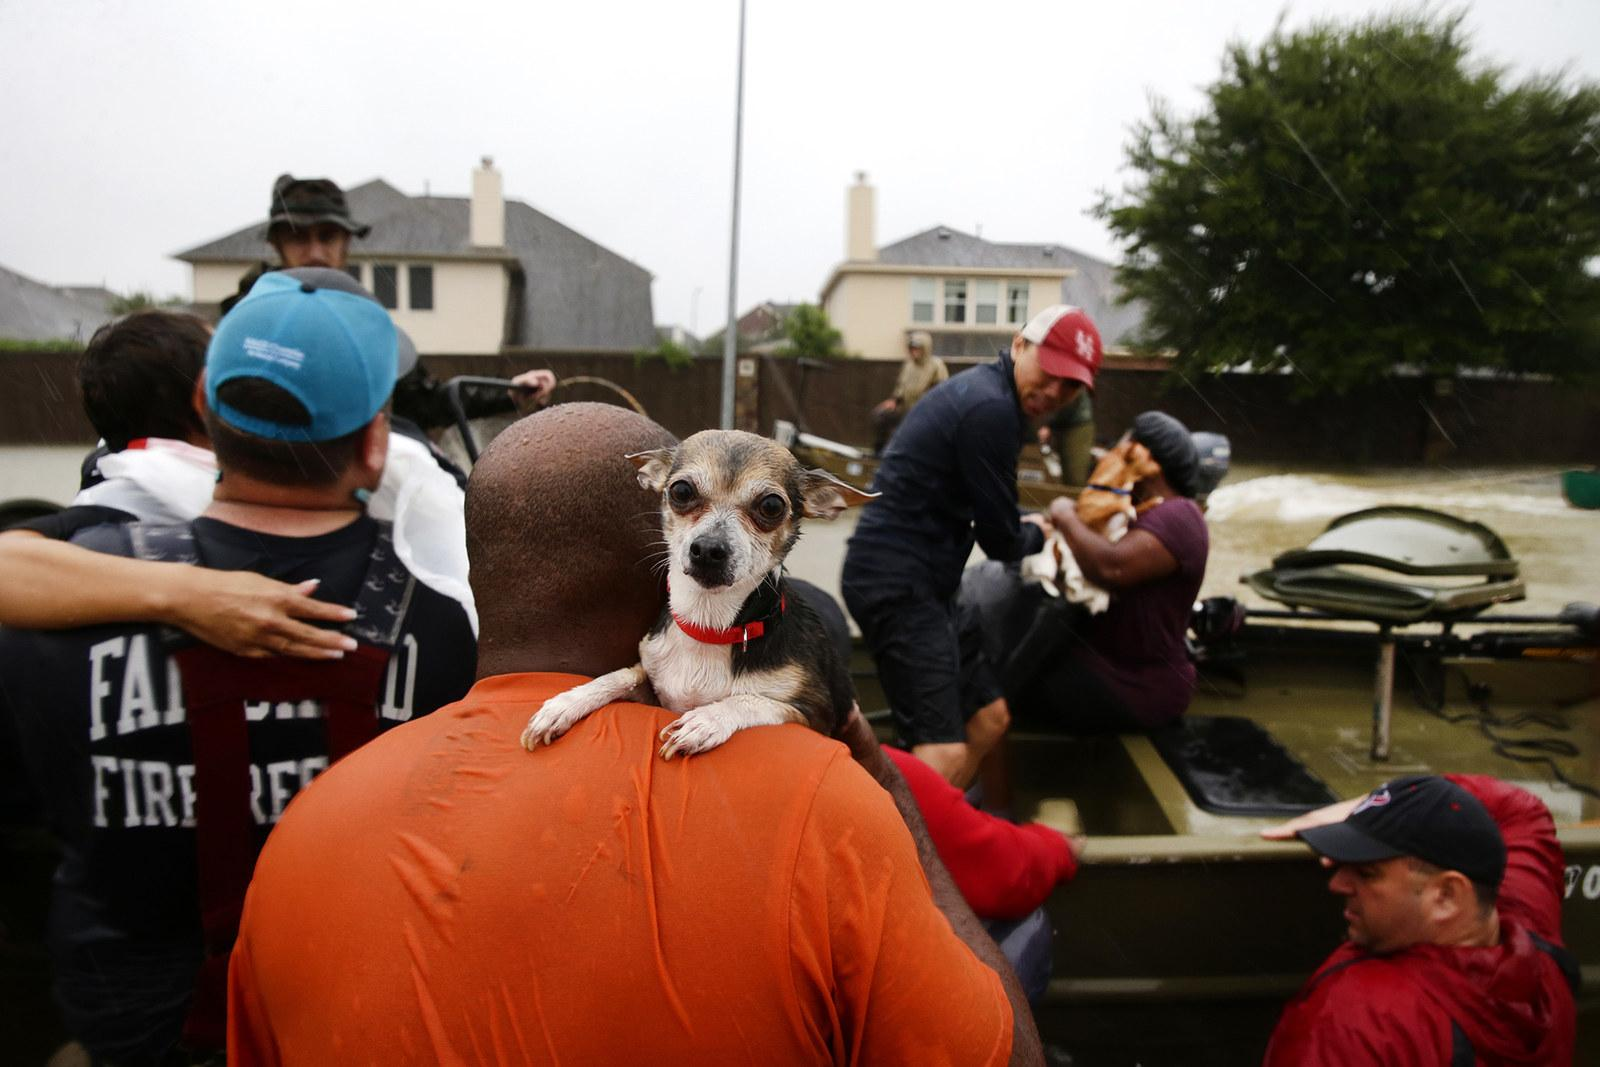 A man carries a small dog to a rescue boat in Clodine, Texas, on Aug. 28.